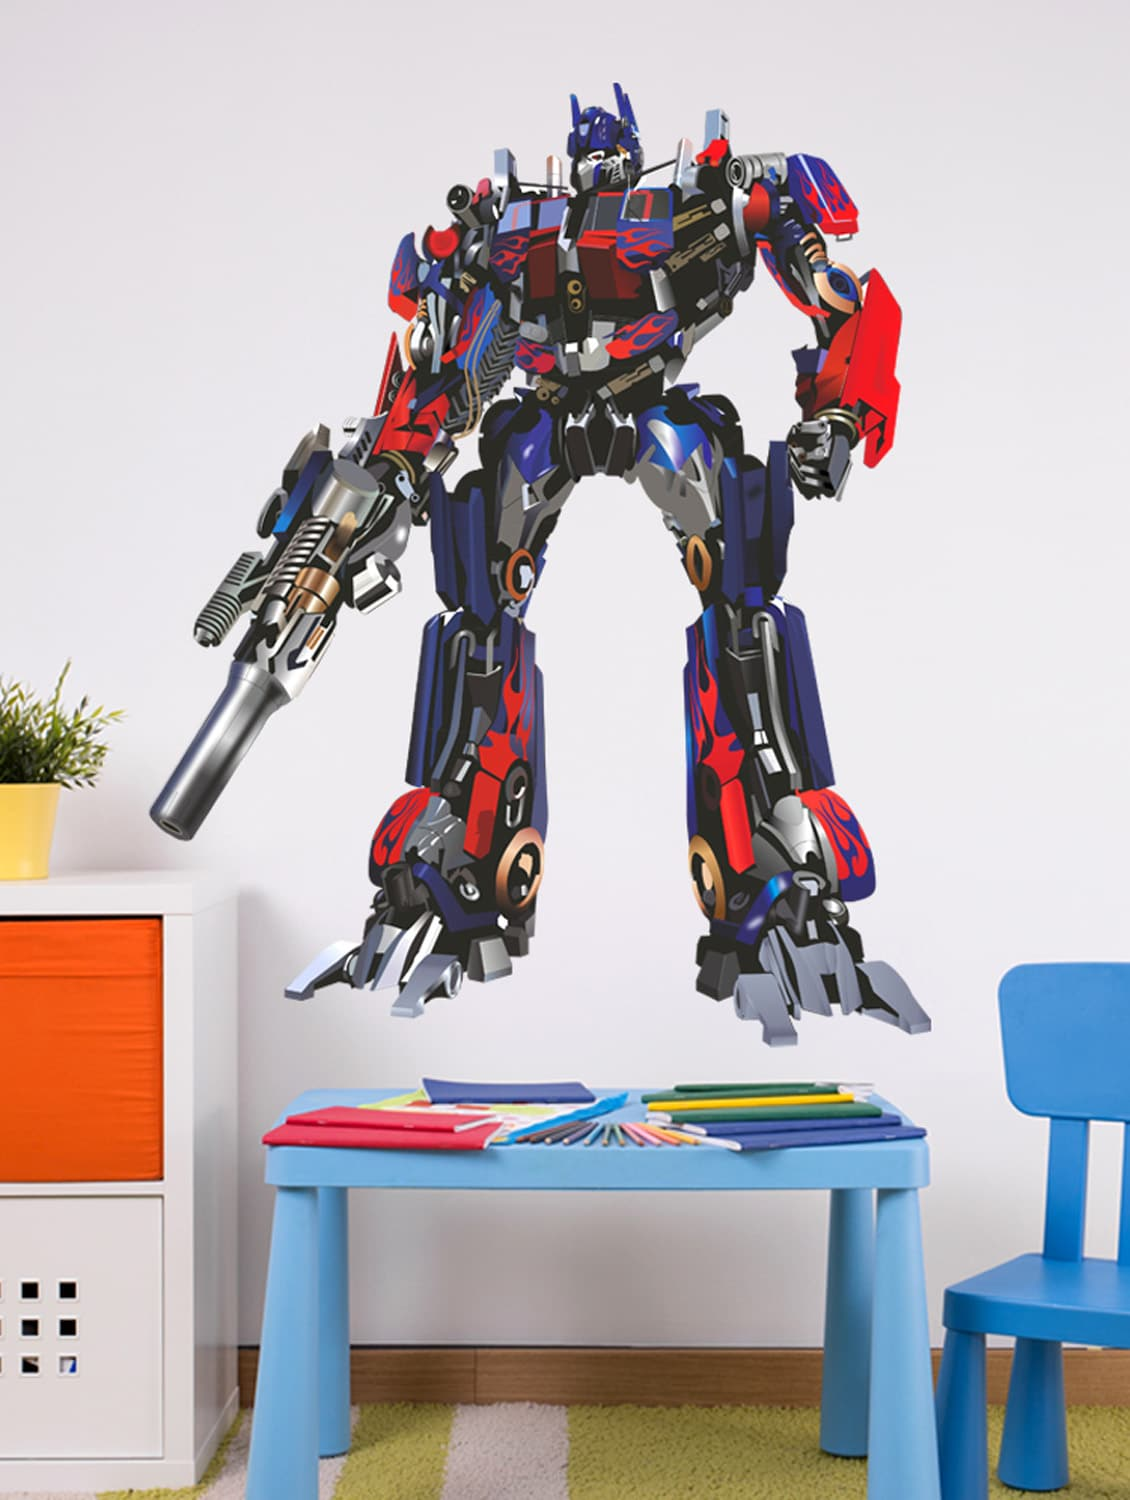 Buy Wall Stickers Transformers Autobots Optimus Prime Boys Room Decor Kids Room Vinyl by Stikerskart - Online shopping for Wall Decals u0026 Stickers in India | ... & Buy Wall Stickers Transformers Autobots Optimus Prime Boys Room ...